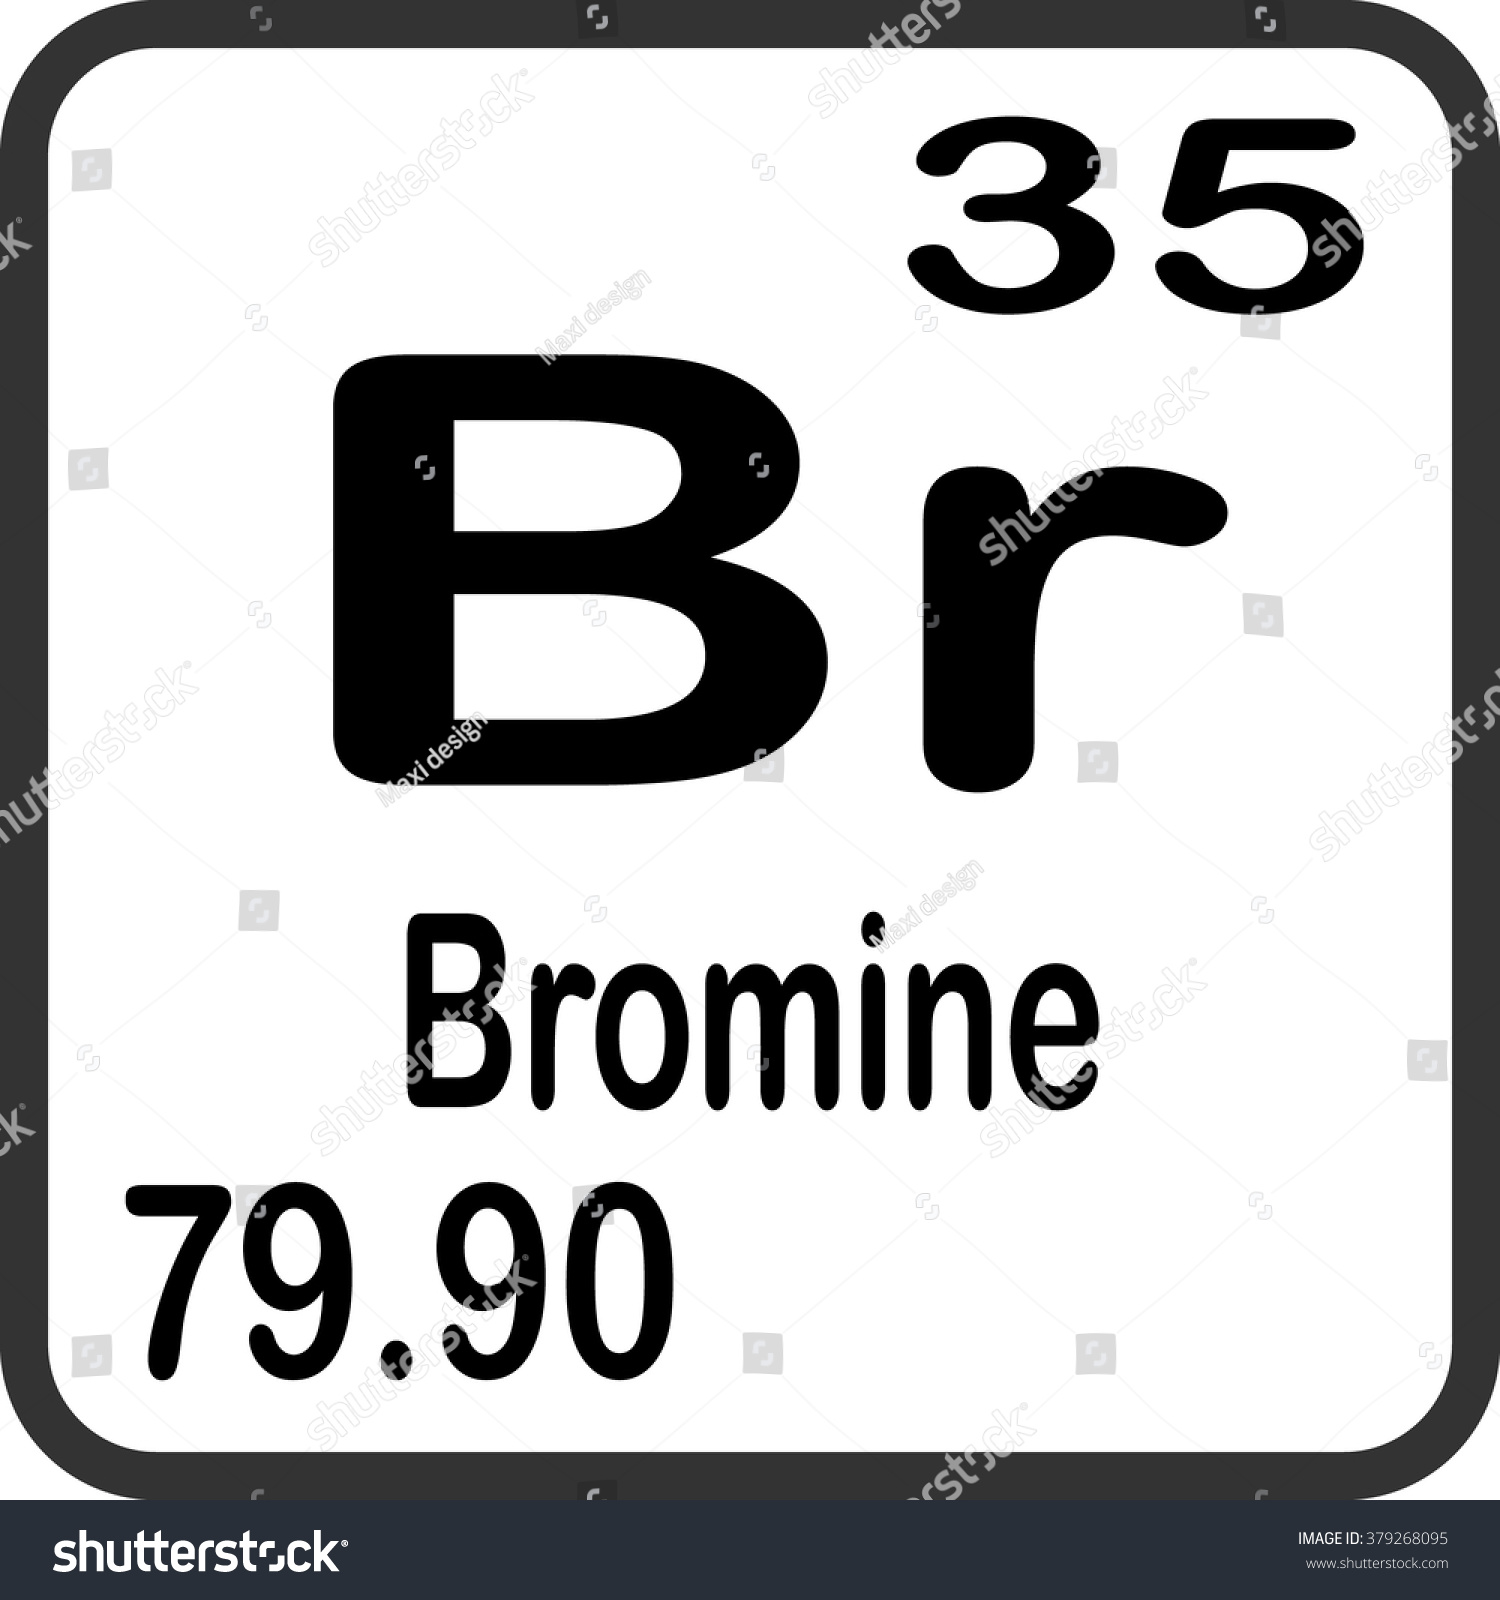 Periodic table elements bromine stock vector 379268095 shutterstock periodic table of elements bromine buycottarizona Choice Image